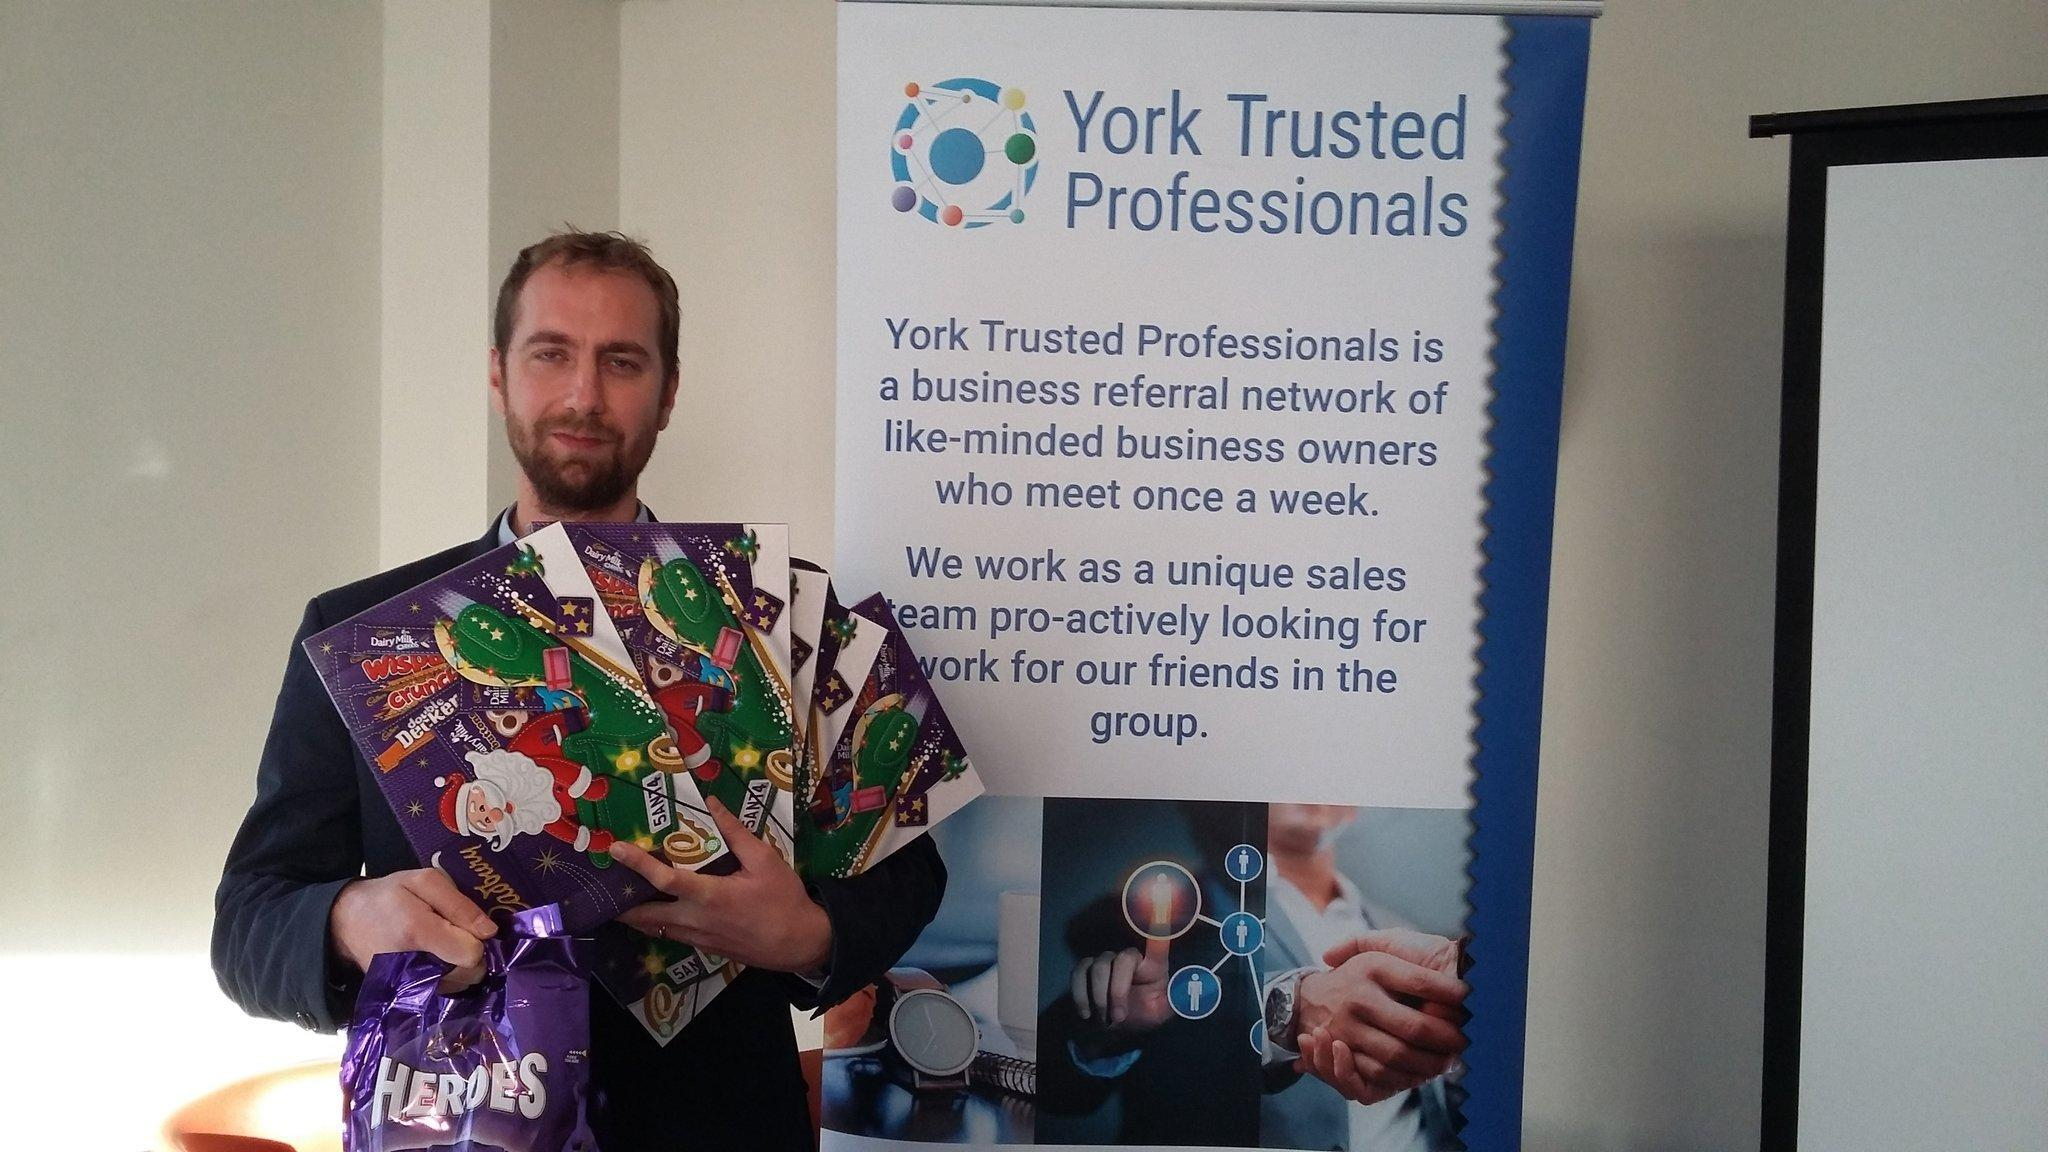 York Trusted Professionals hold their annual charity dinner